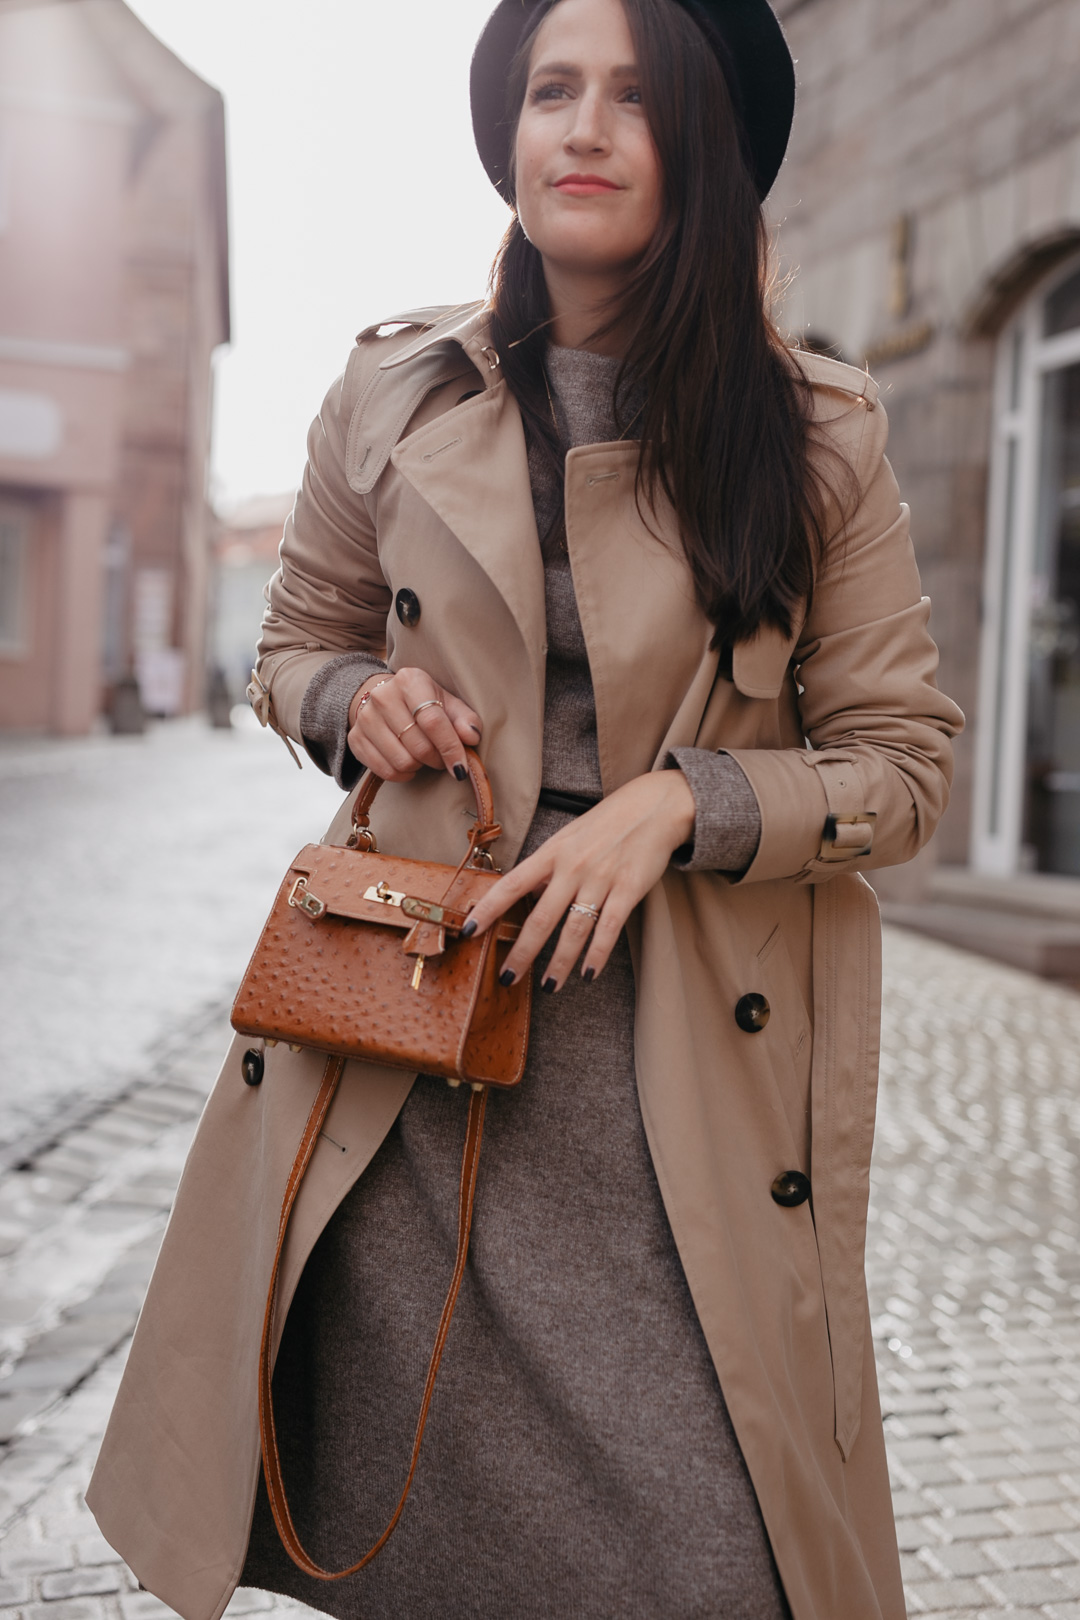 Herbstlook mit Trenchcoat - Pieces of Mariposa / Fashion & Lifestyle Blogger Nürnberg